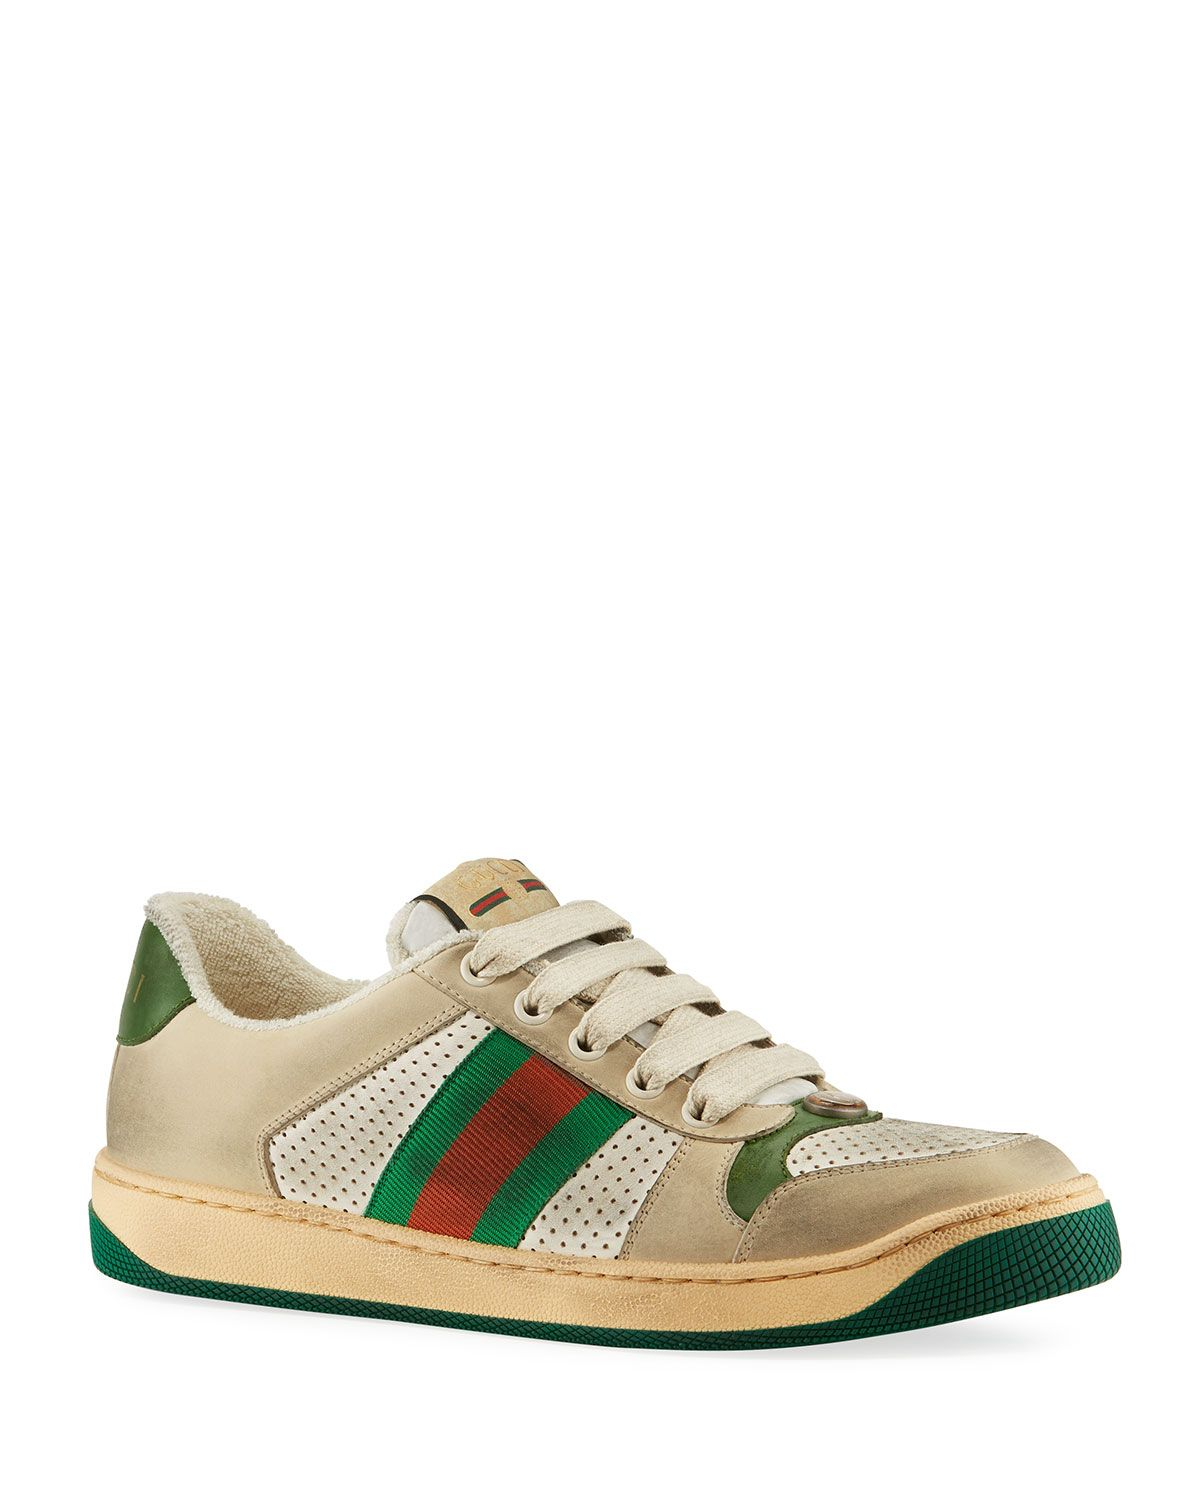 Gucci Screener Distressed Lace-Up